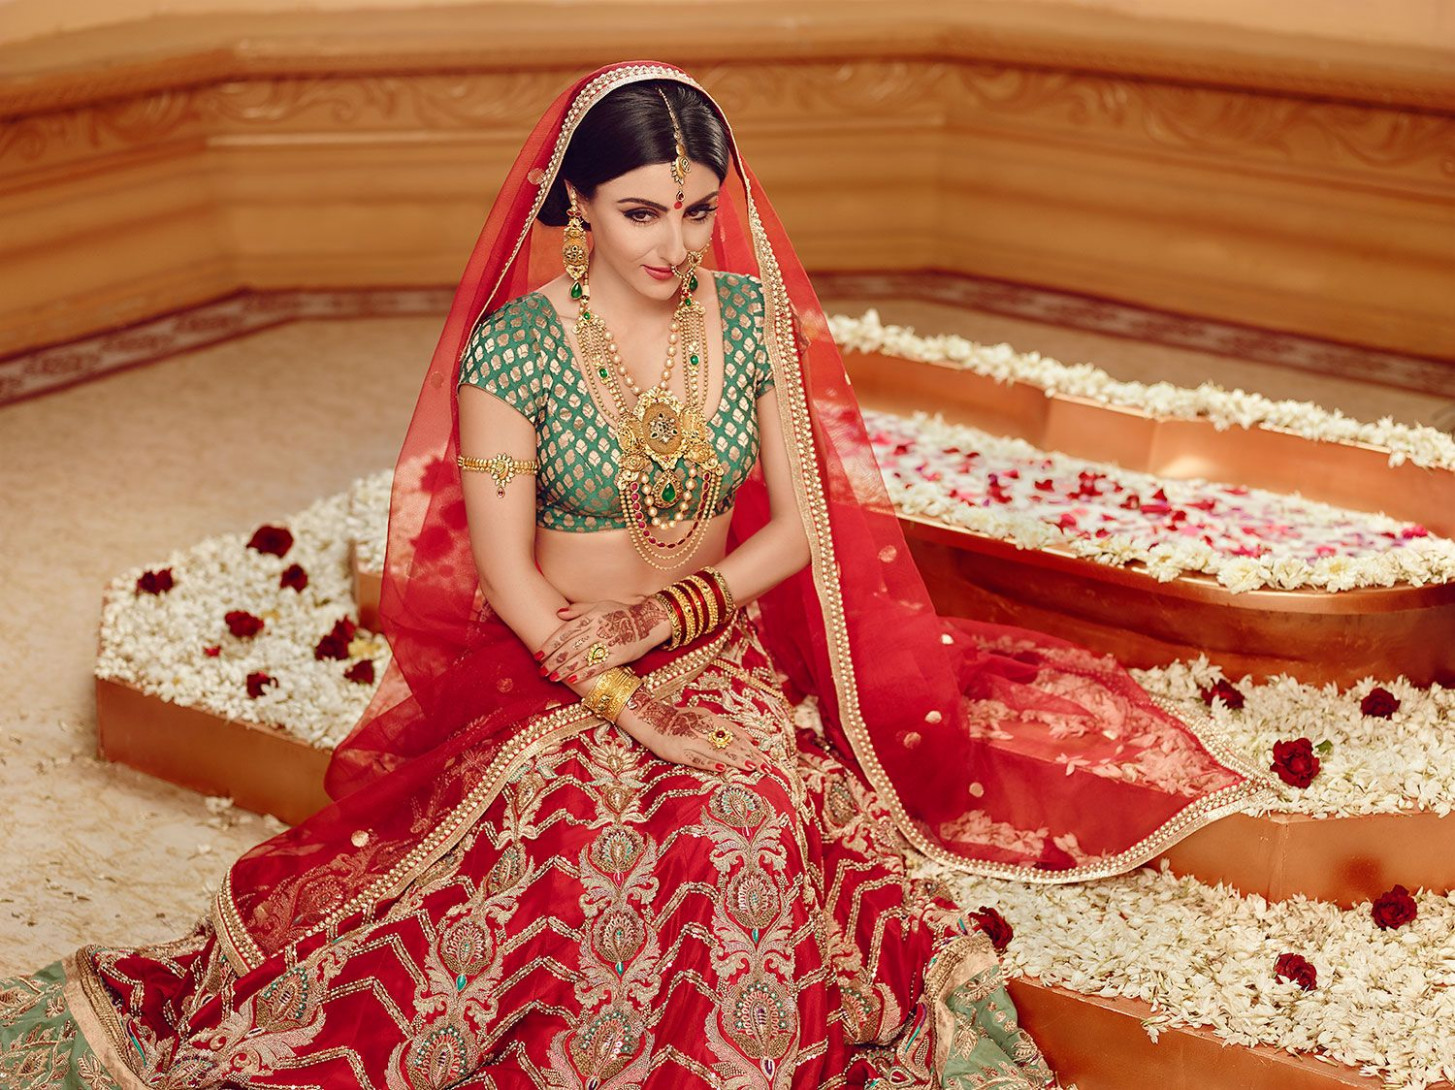 North Indian Hindu Bride | BRIDES OF INDIA | Pinterest ...